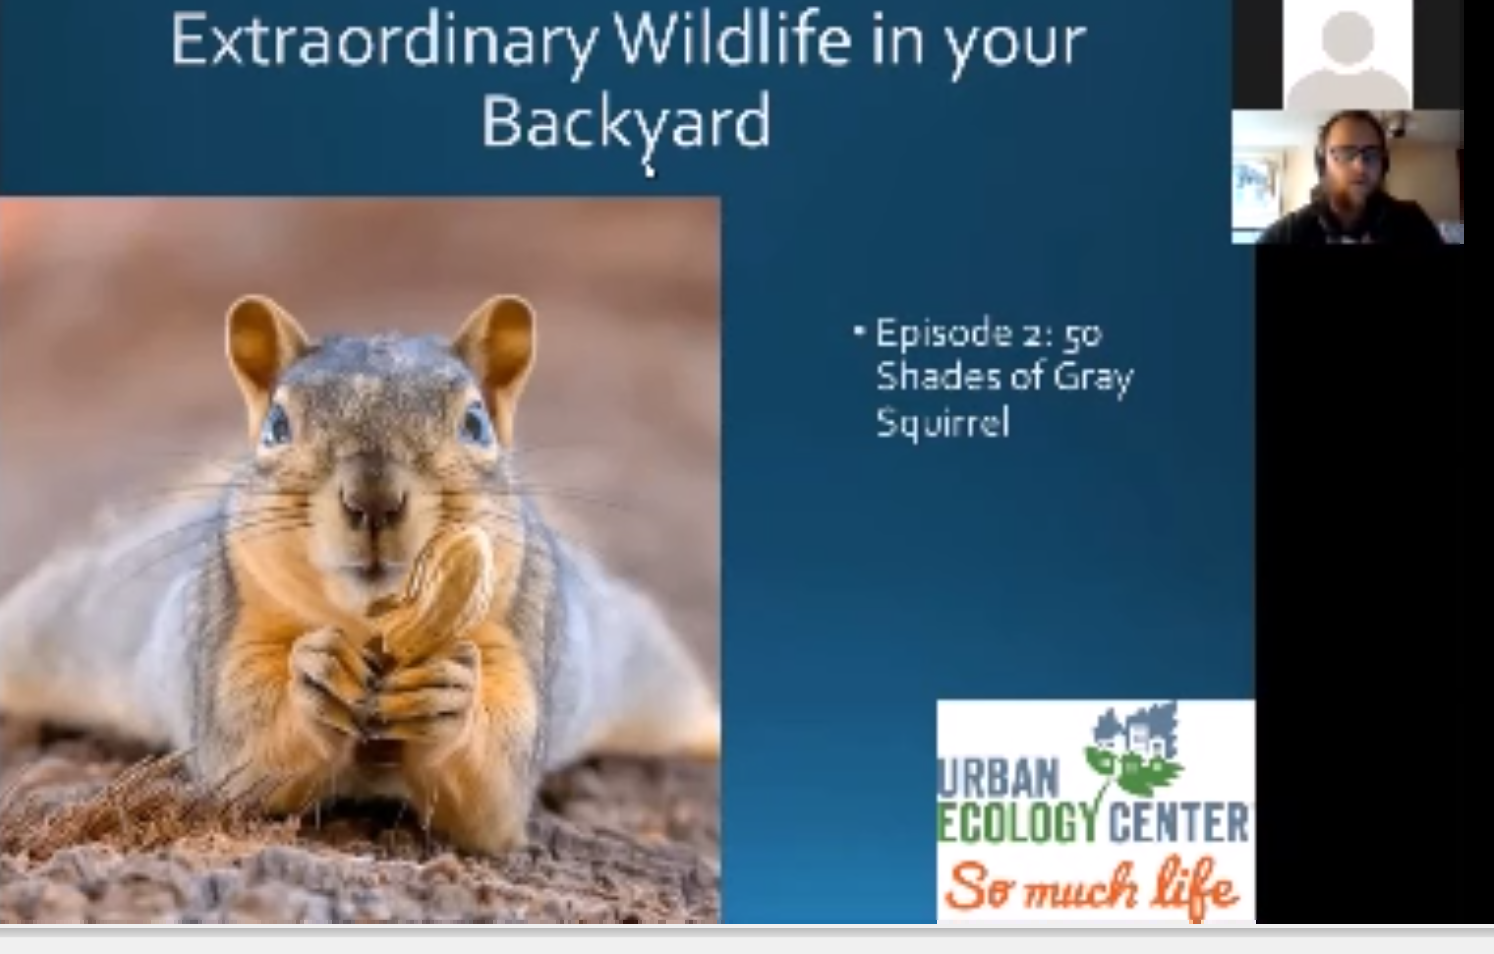 Extraordinary Wildlife in Your Backyard. Season 1, Episode II: Fifty Shades of Gray Squirrel